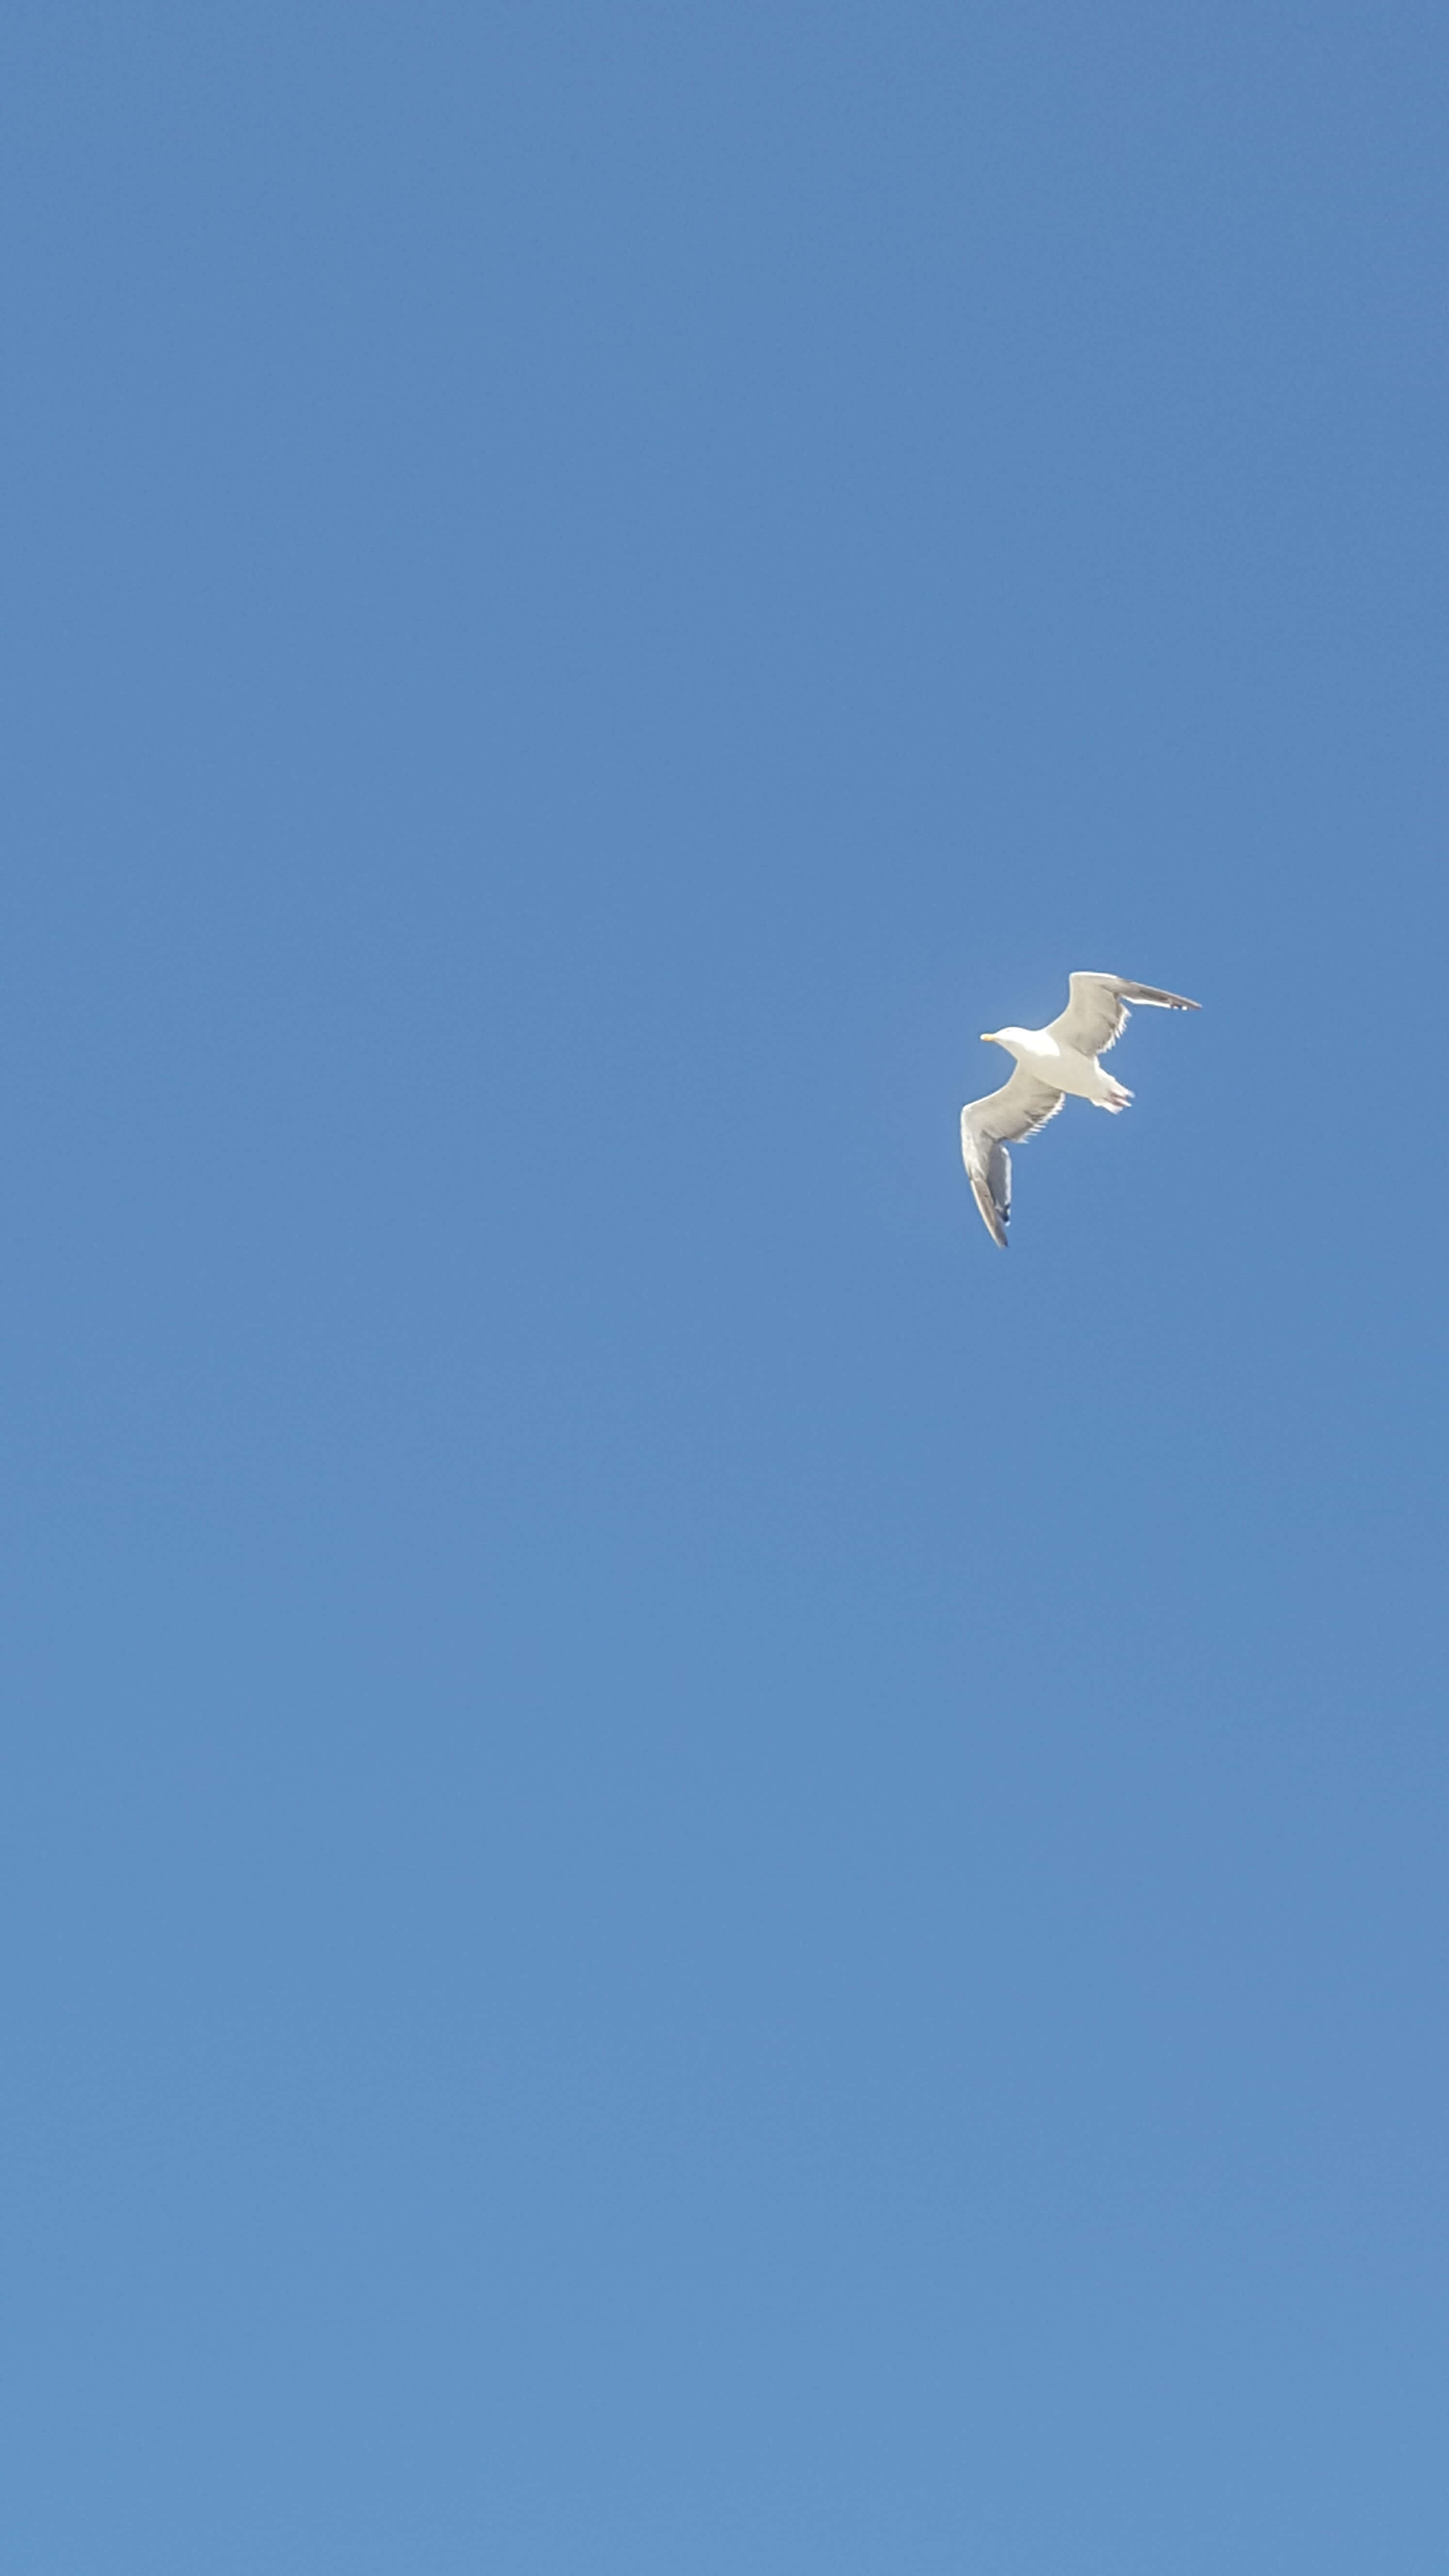 White seagull against a blue sky